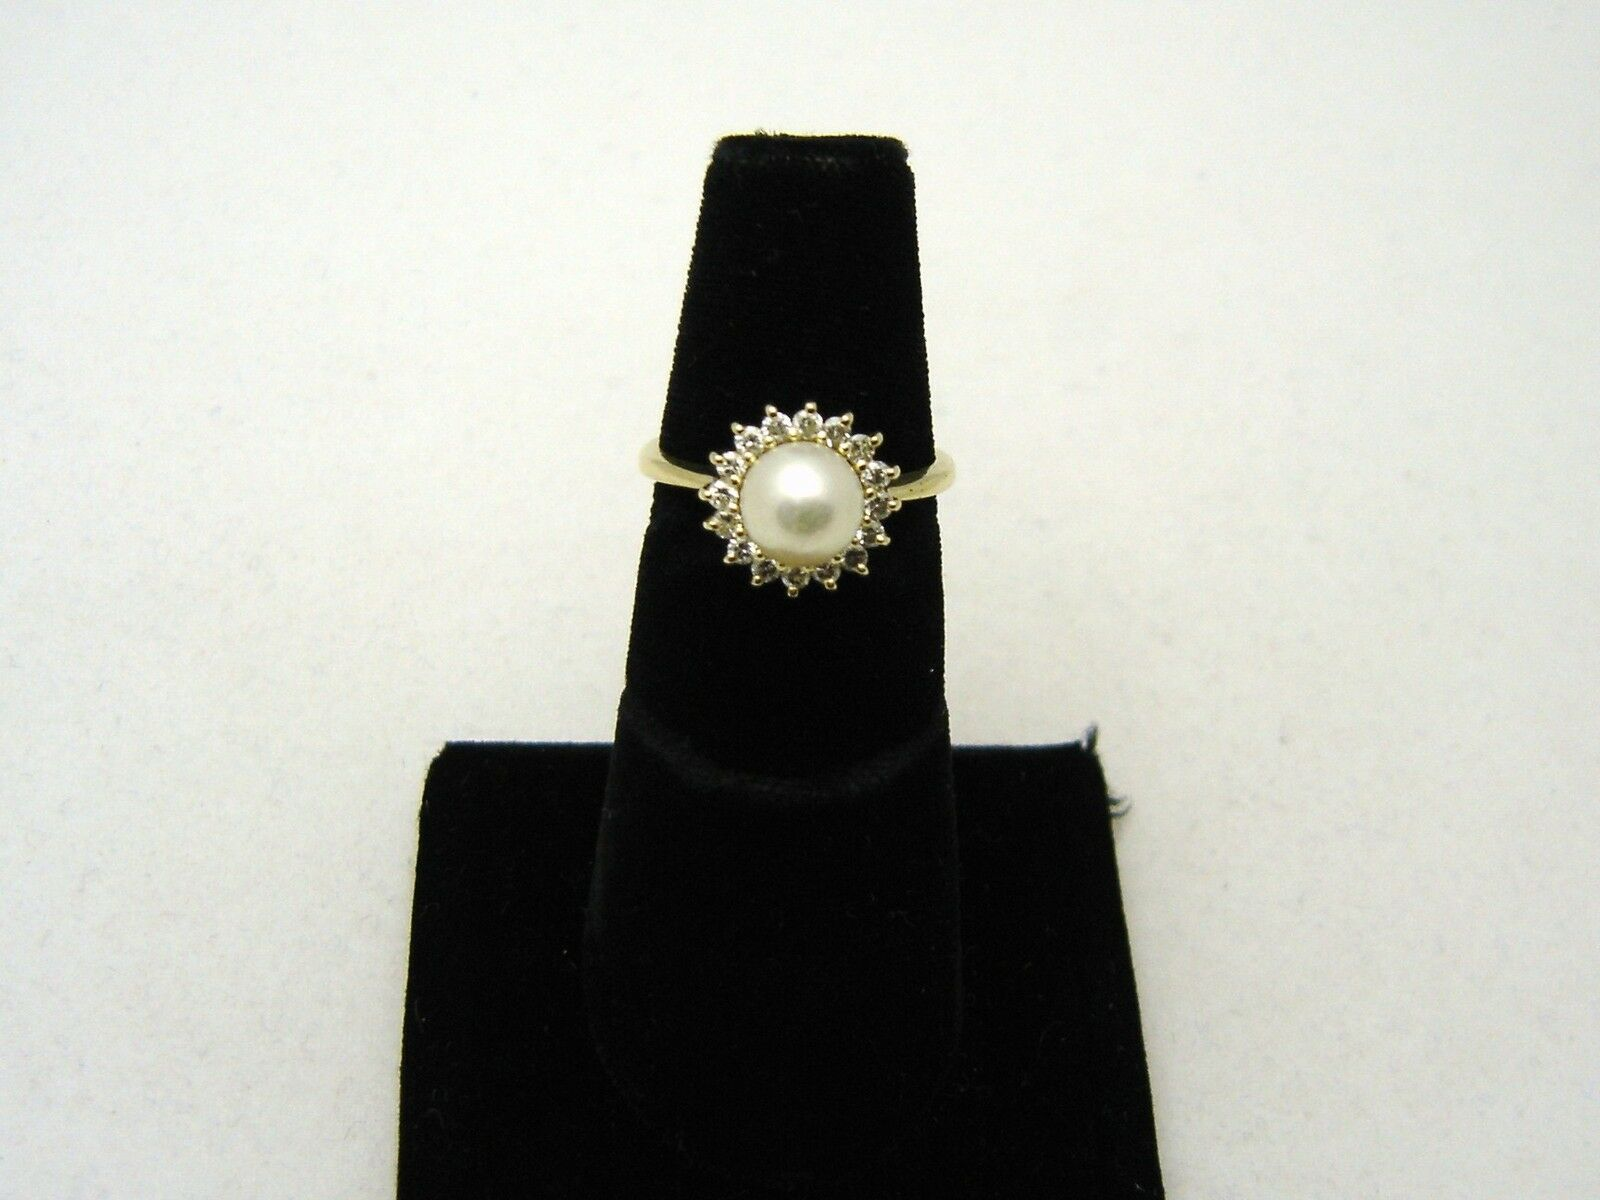 FABULOUS 14K gold CULTURED SALT WATER PEARL and 16 DIAMOND RING SIZE 6 1 4